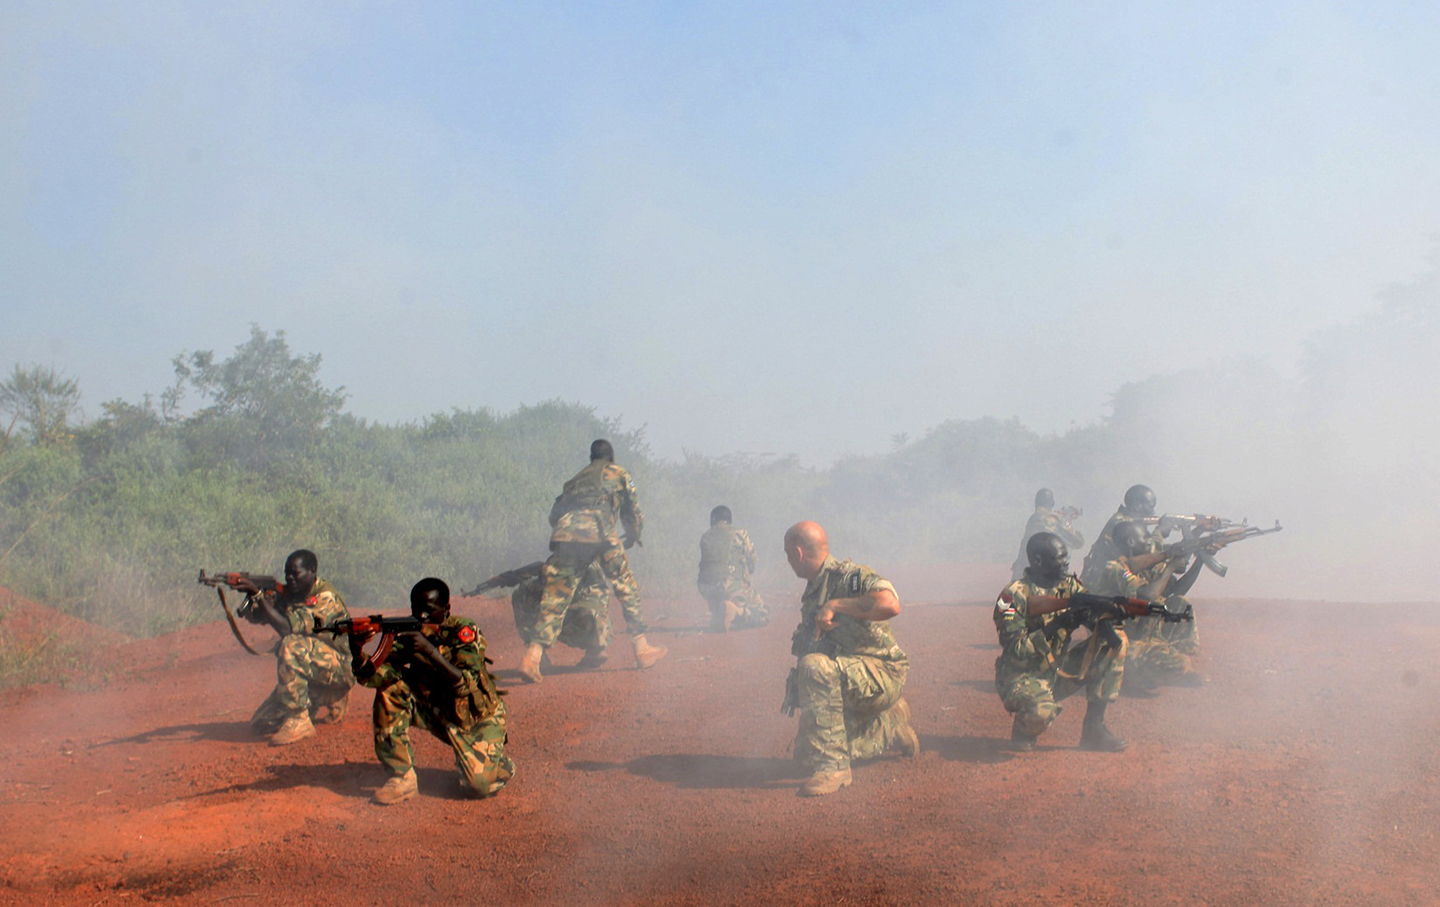 A U.S. Special Forces trainer supervises a military assault drill for a unit within the Sudan People's Liberation Army conducted in Nzara on the outskirts of Yambio